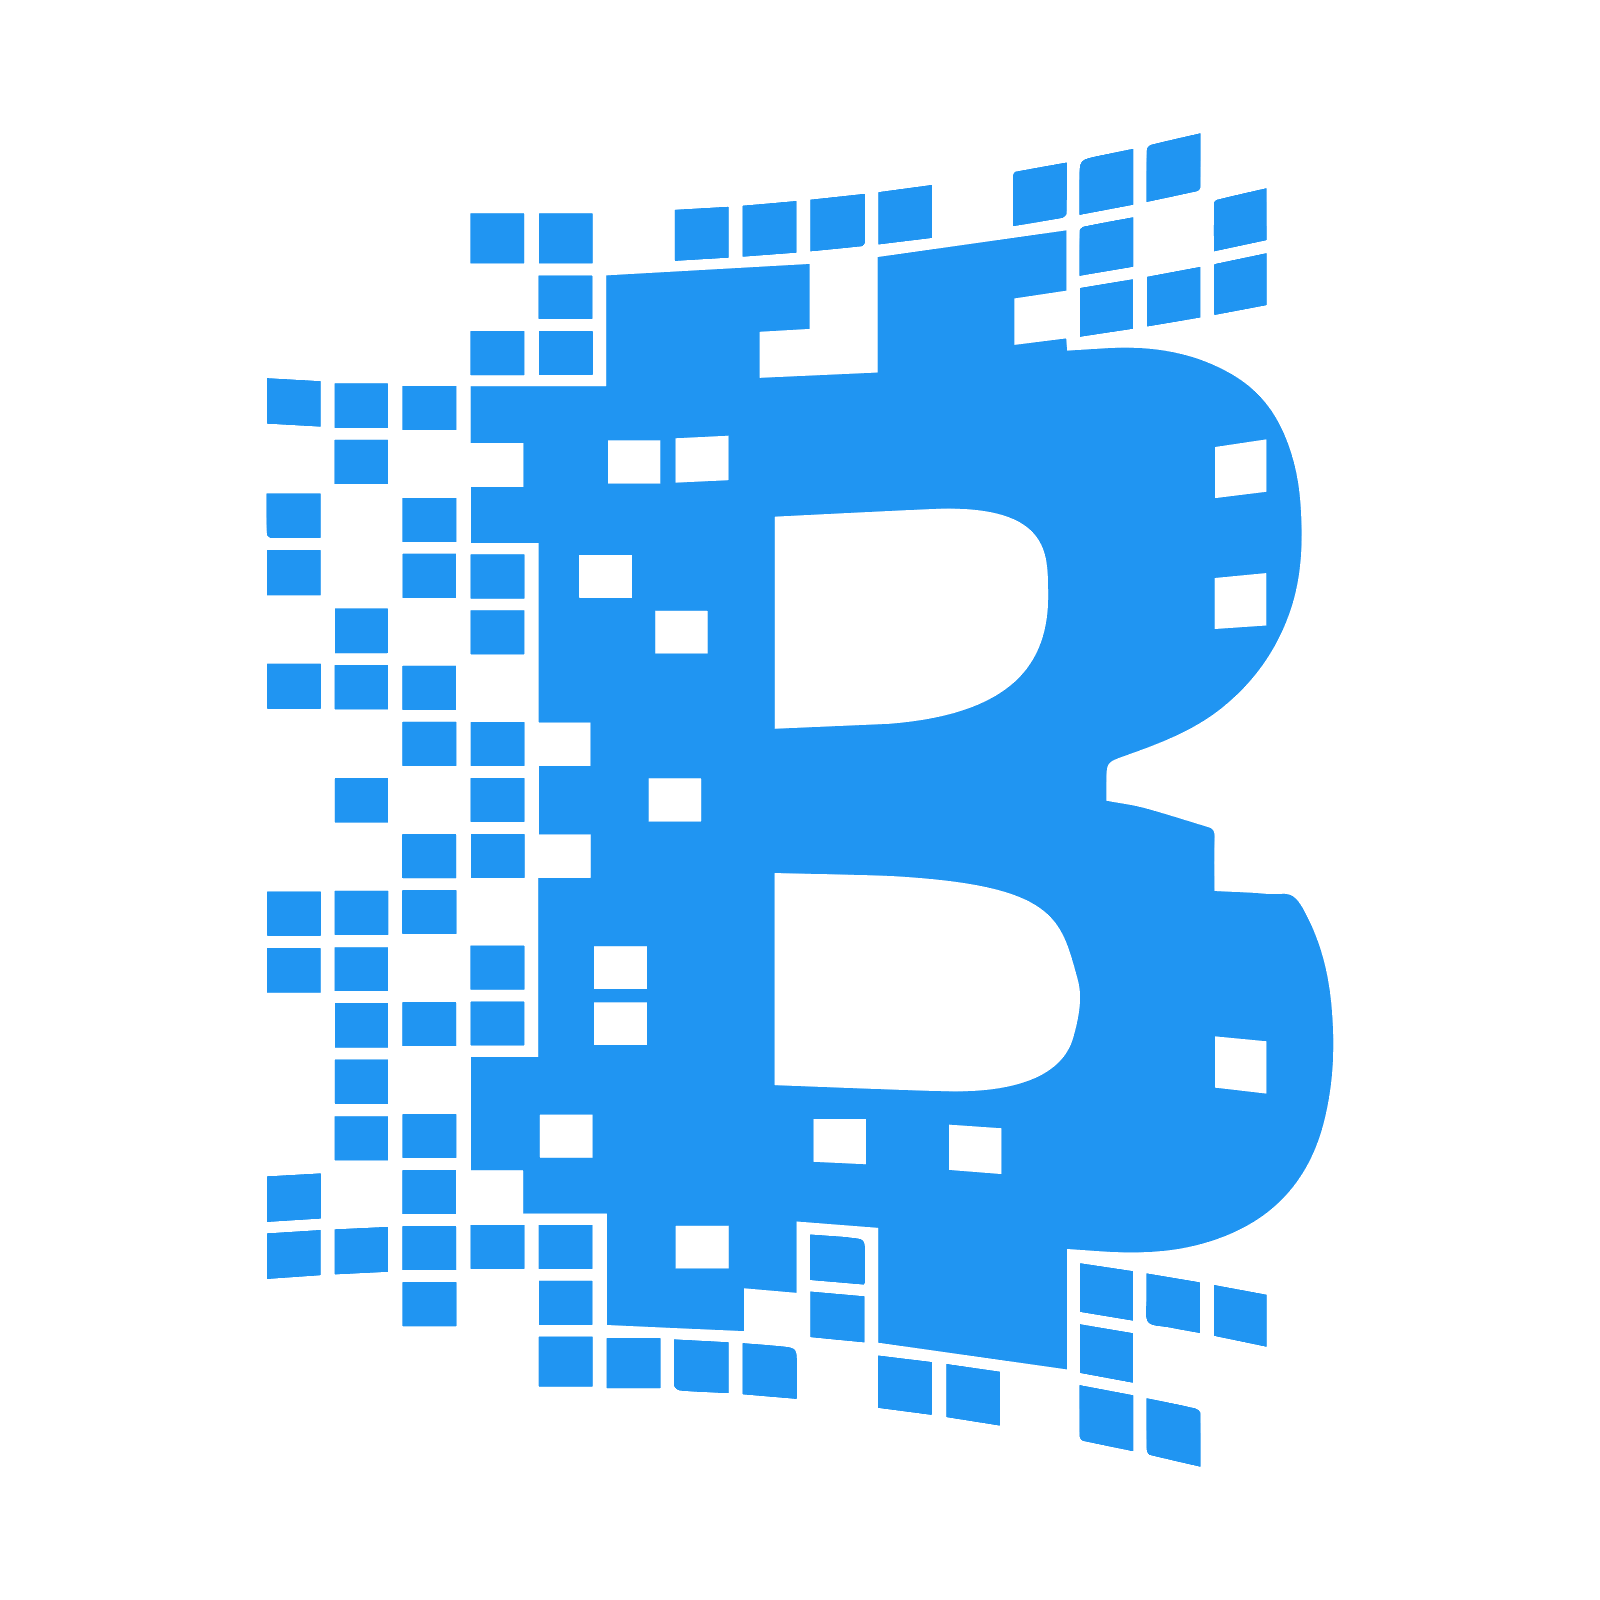 Blockchain.Info Distributed Blockchain Bitcoin Ledger Bank PNG Image